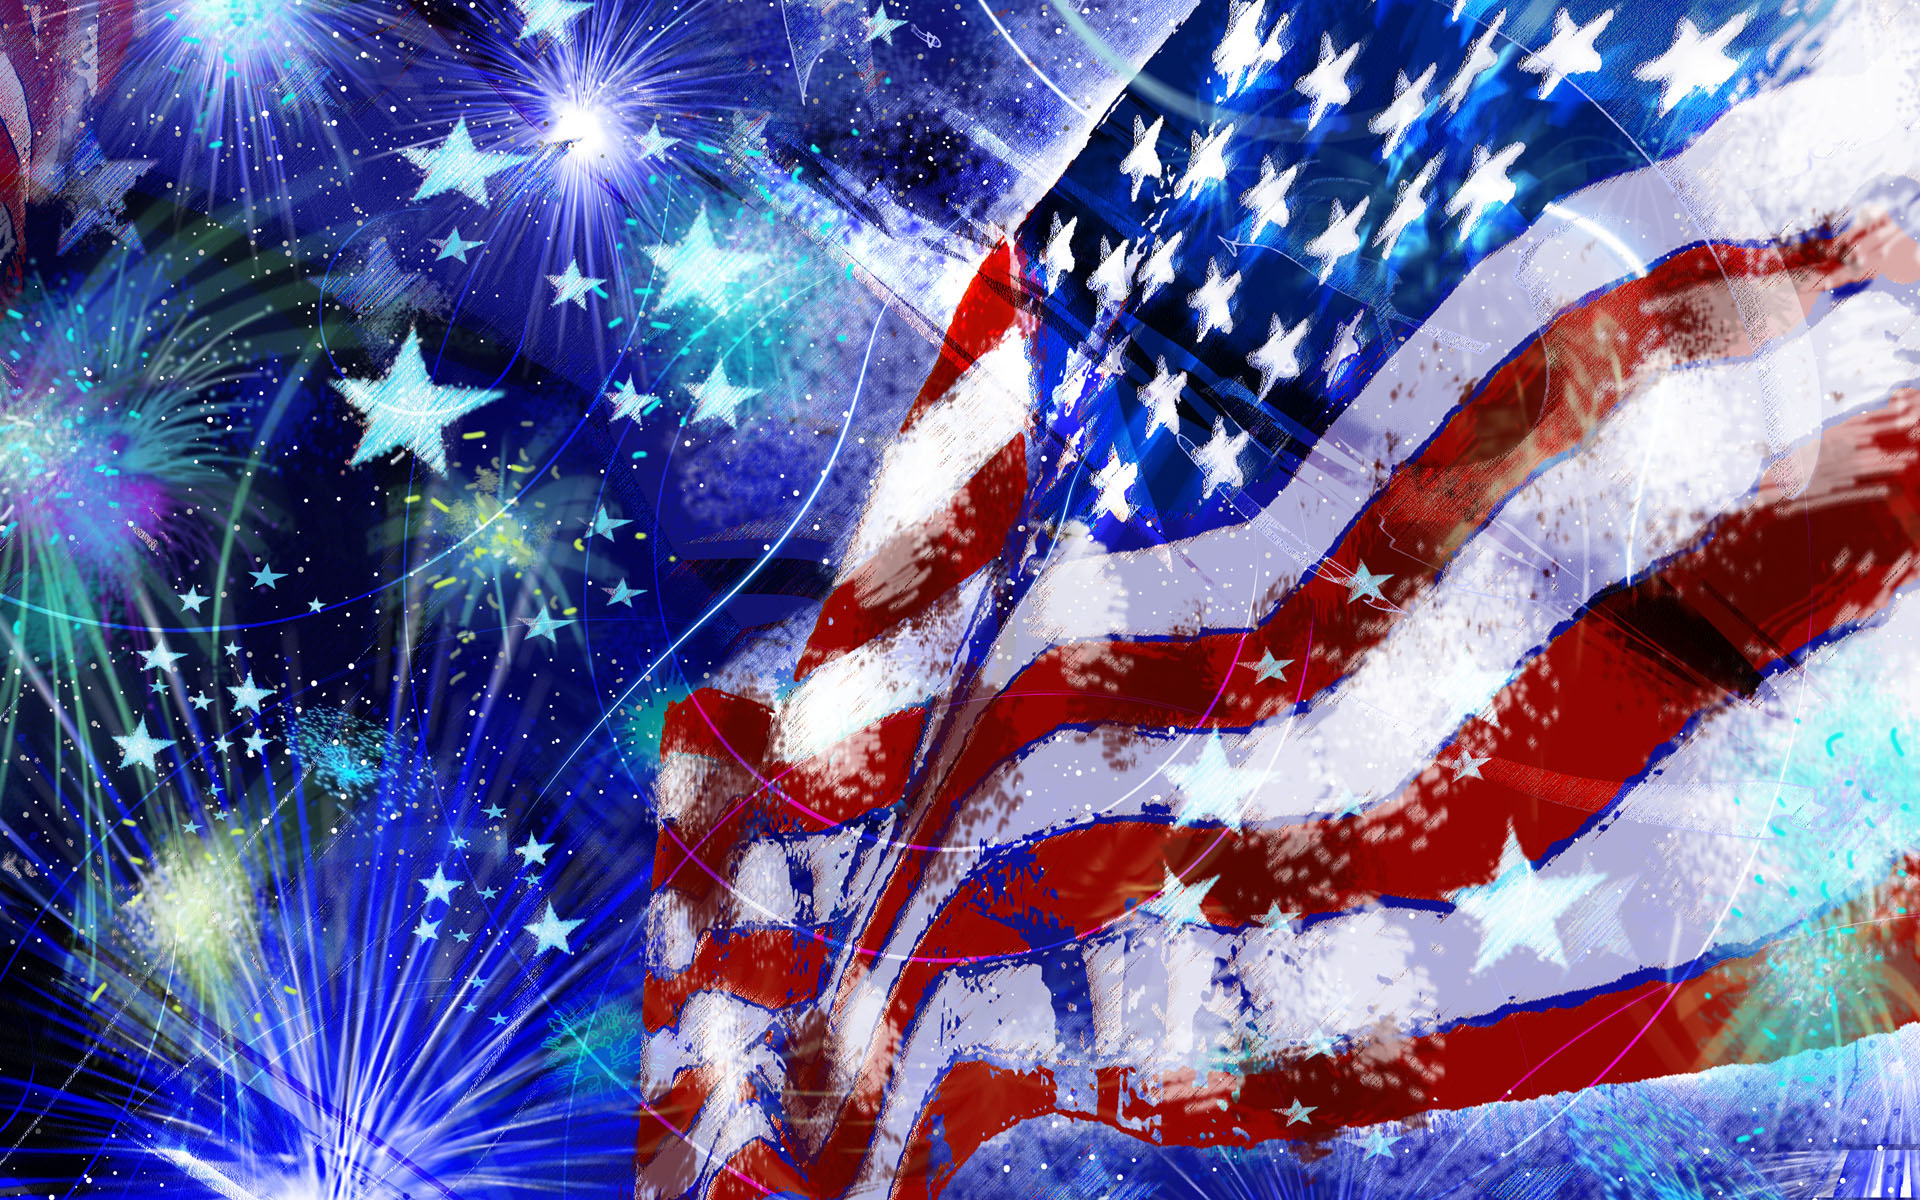 19201200 USA Independence Day illusration Wallpaper 1920x1200 NO 1920x1200